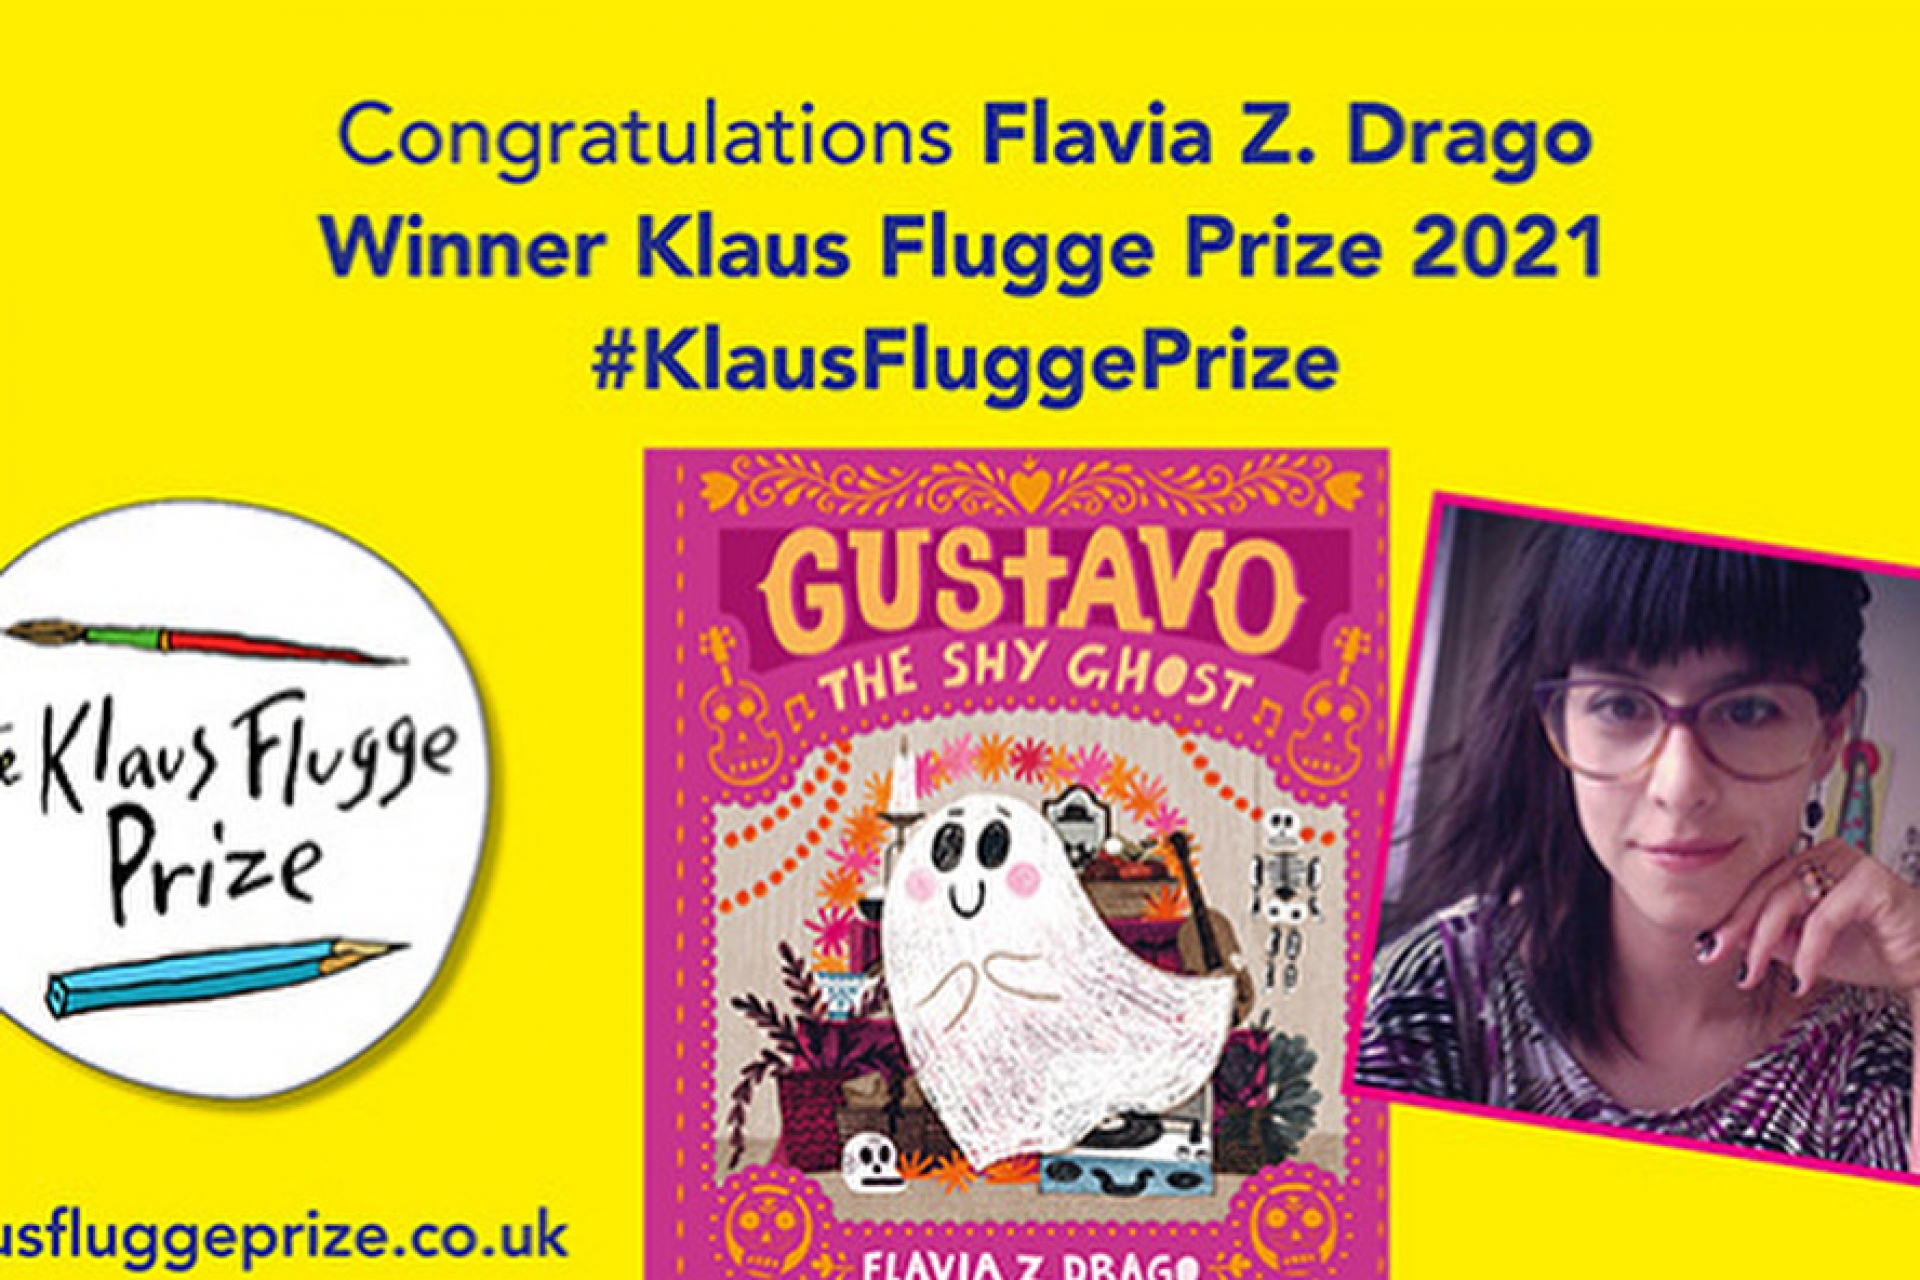 Flavia Z. Drago wins the 2021 Klaus Flugge Prize for Gustavo, the Shy Ghost